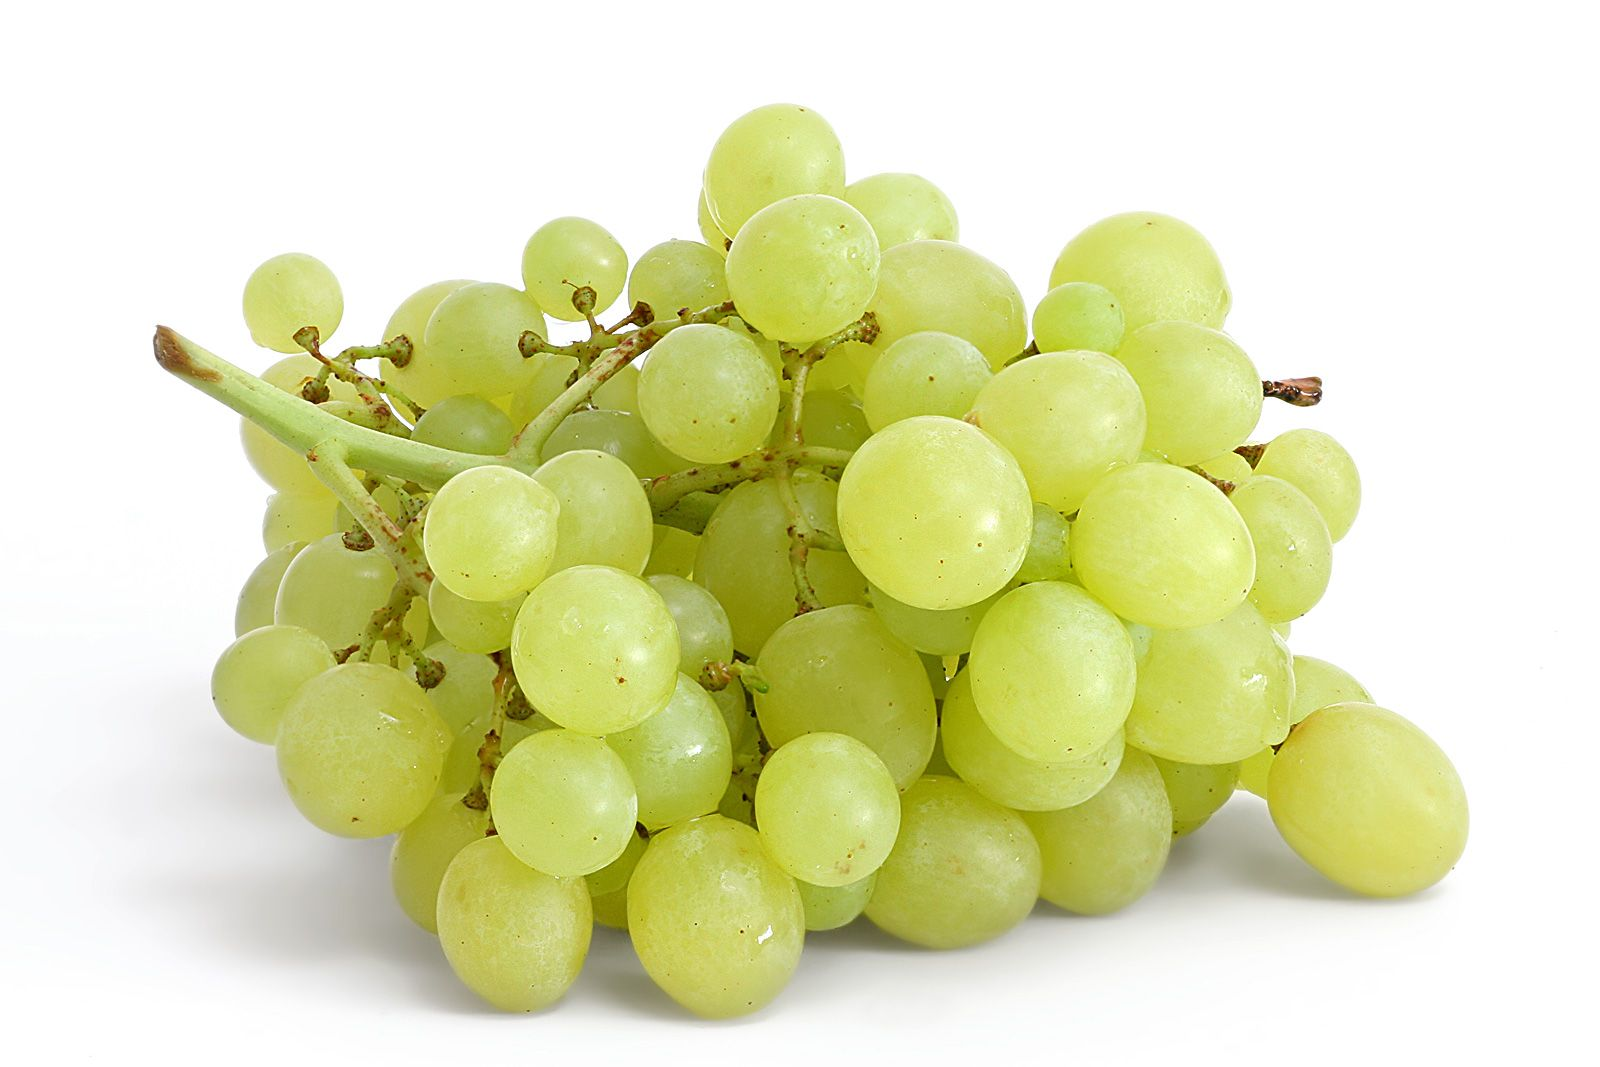 7 Health Benefits of Eating Grapes